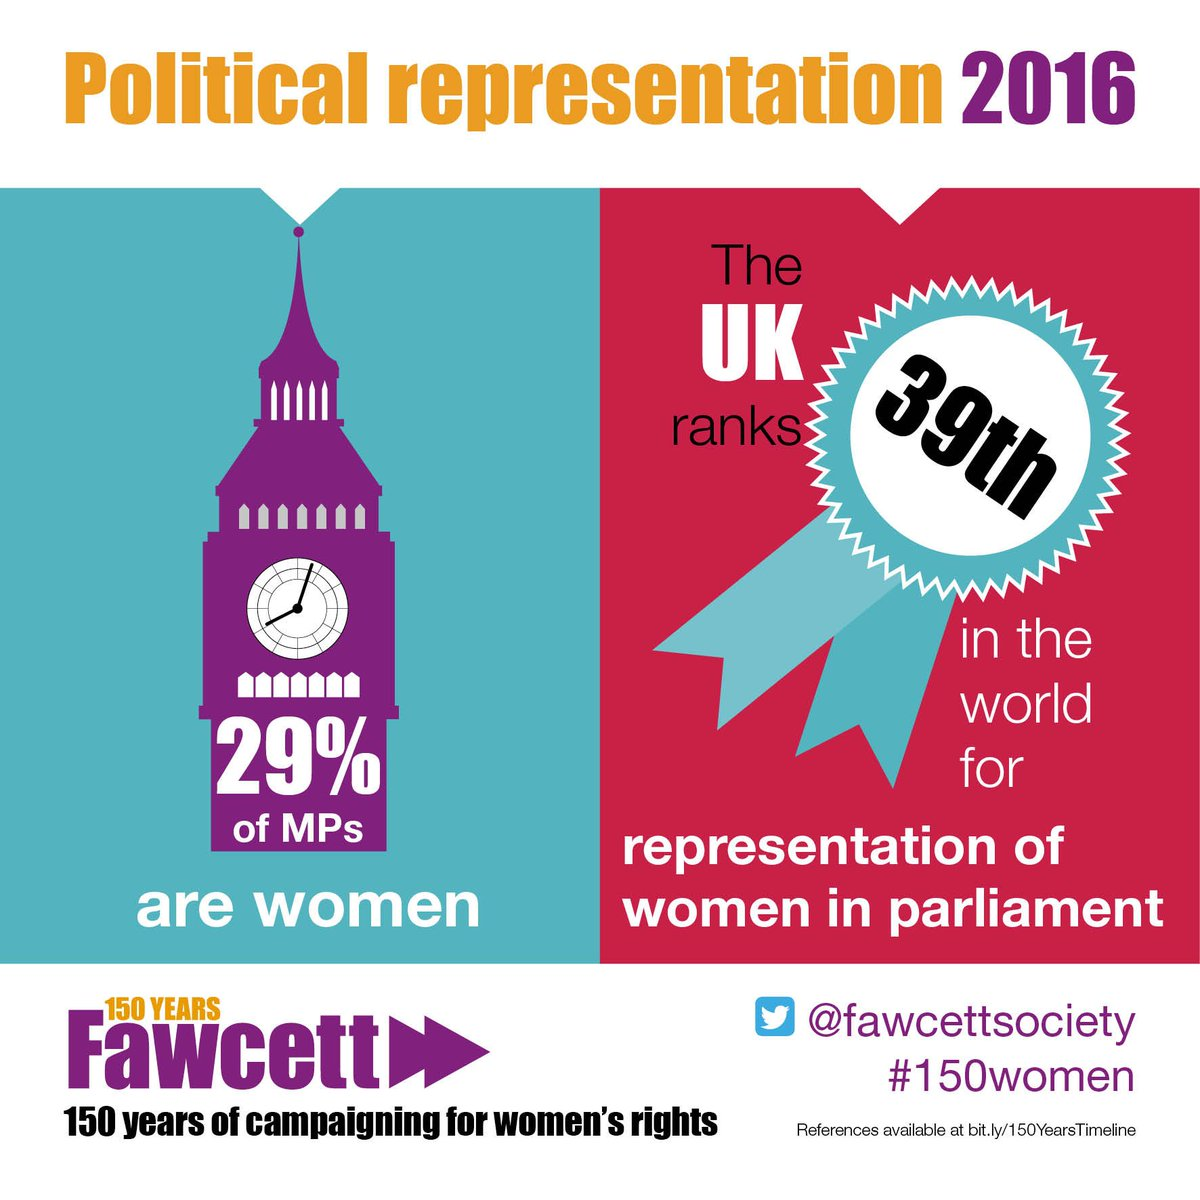 Only 29% of MPs are female - so 71% of your representation are men. Doesn't quite fit, does it? #IWD2016 https://t.co/vggNrwEzVW